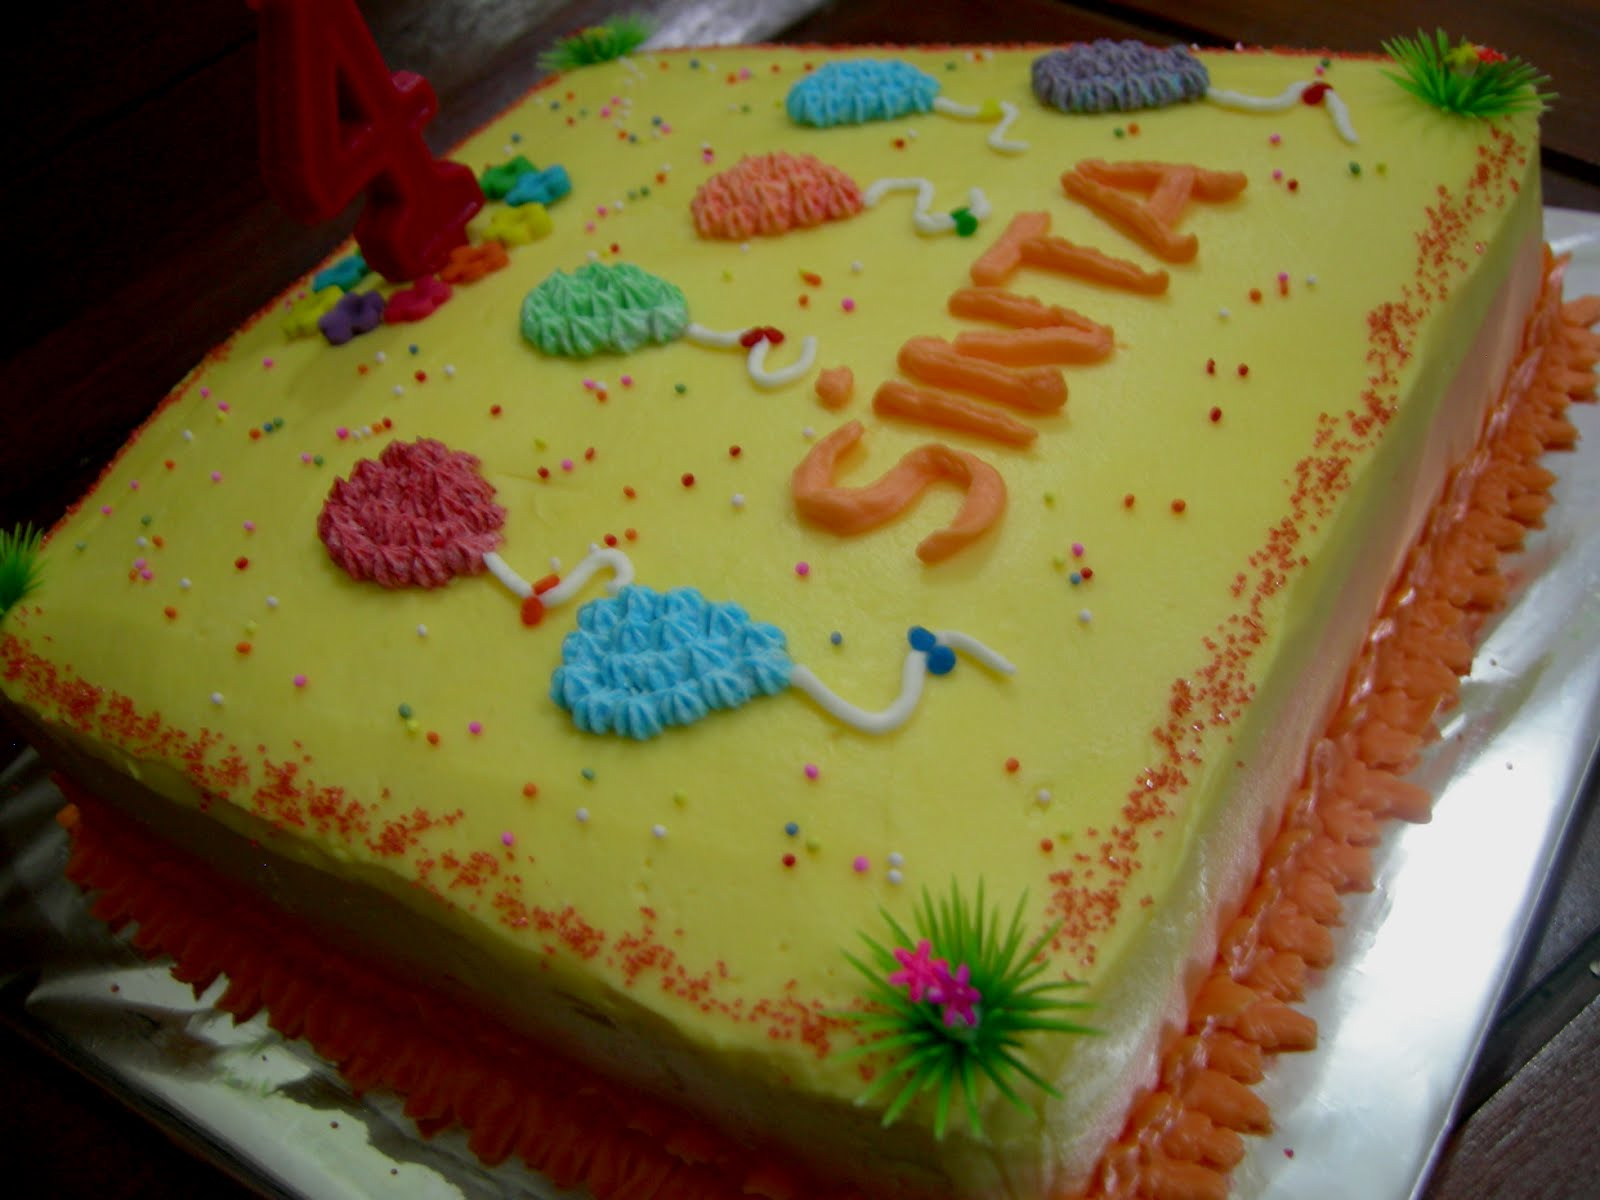 Cake Images Dow : Kuenya-Najmina.com: Simple BirthdayCake for Sinta